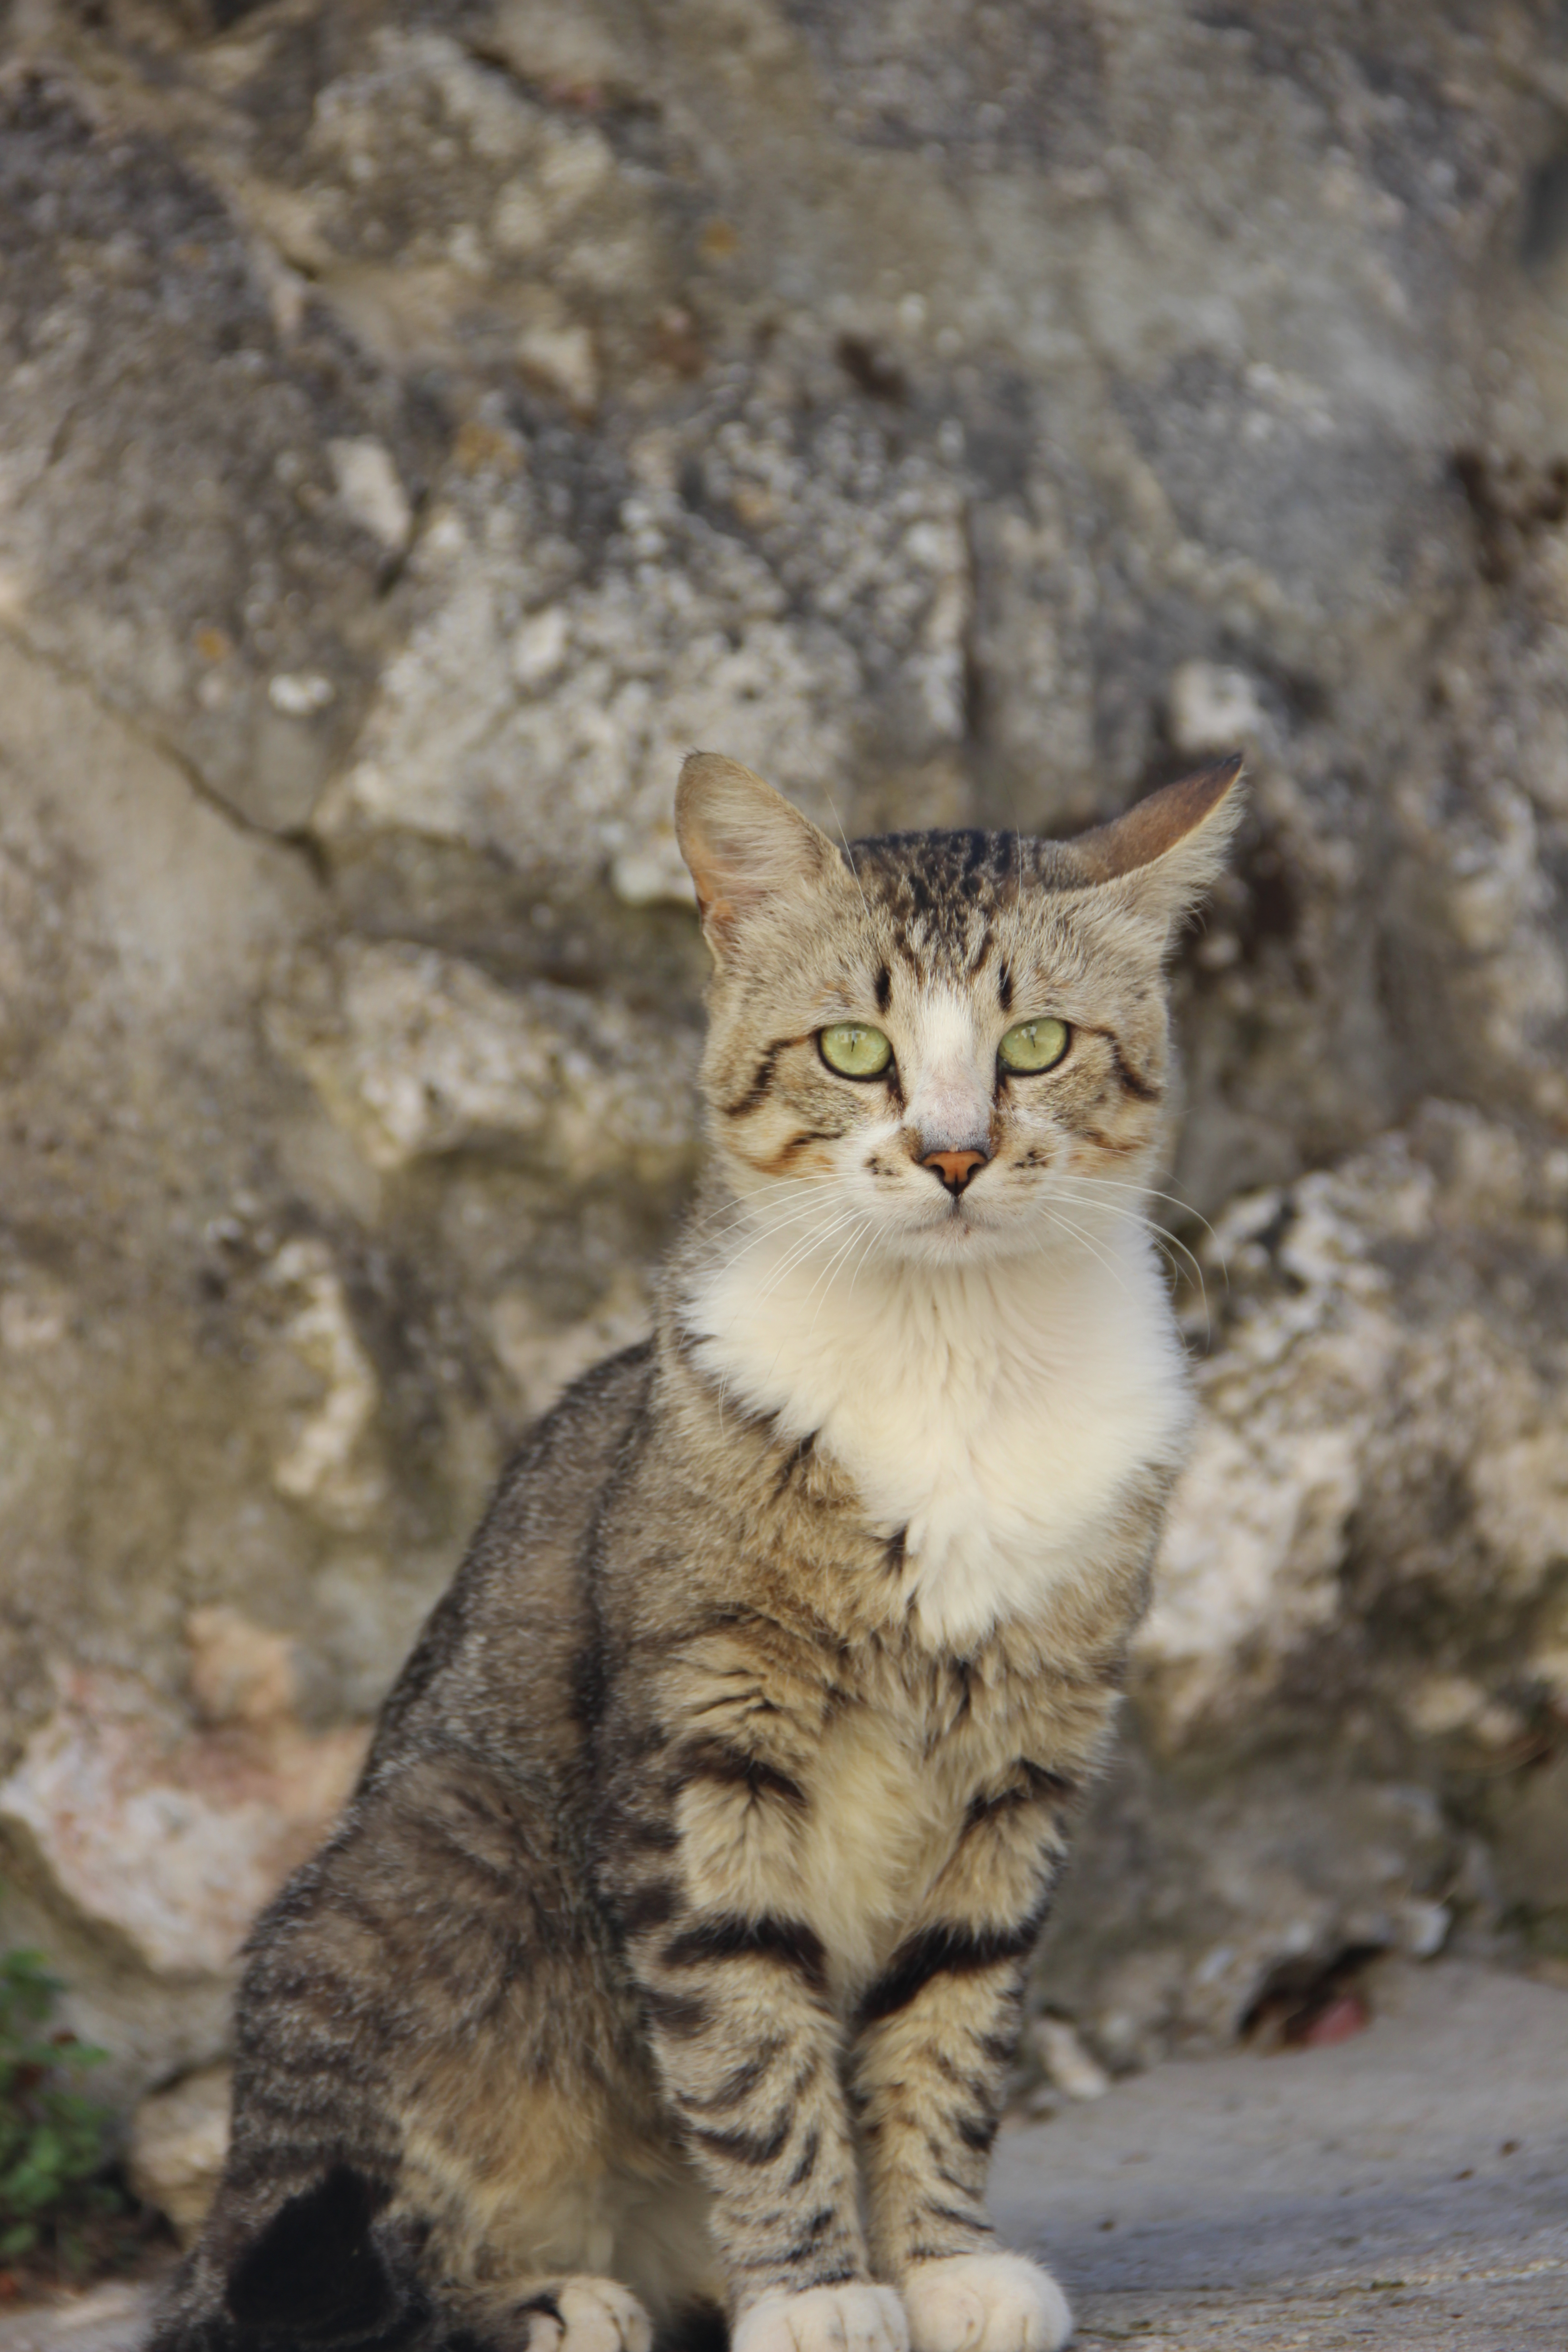 CAMILLE MORENOS - Chat des rues, Animal, Cat, Outdoor, Pet, HQ Photo